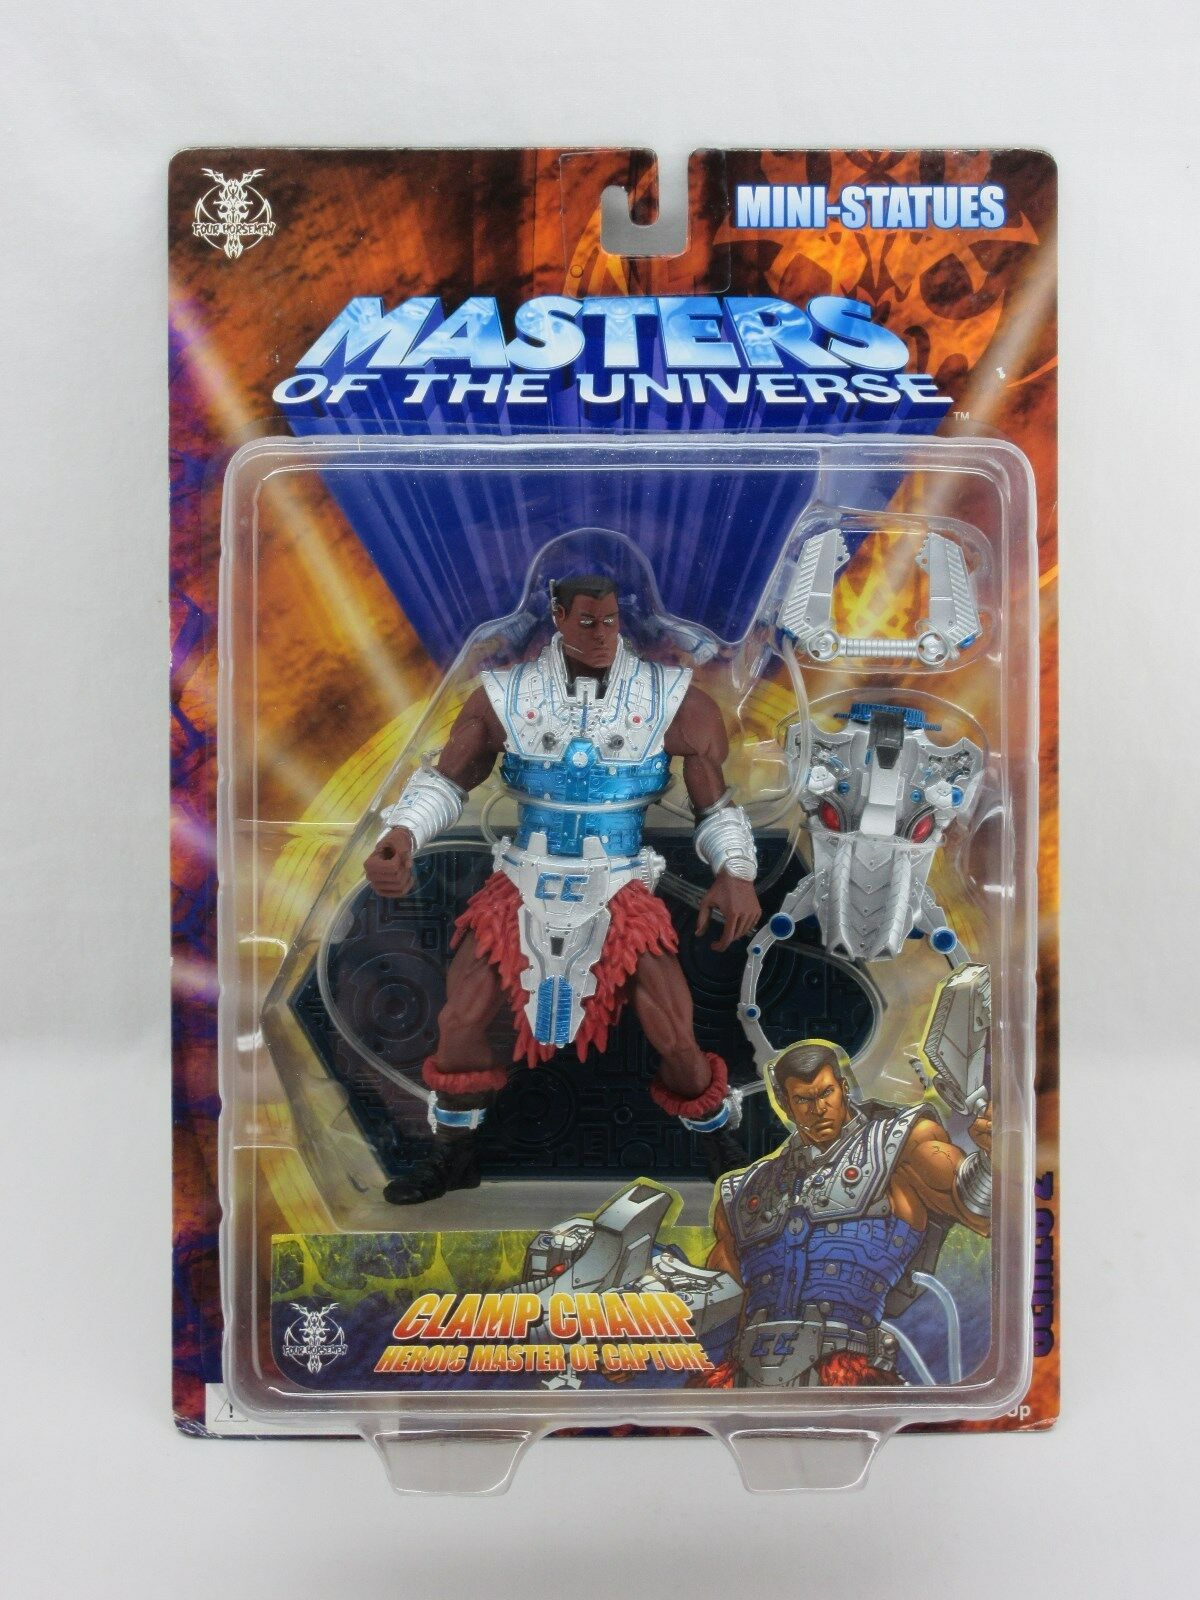 MOTU,CLAMP CHAMP,200x,Neca statue,MISB,Sealed,Masters of the Universe,He man